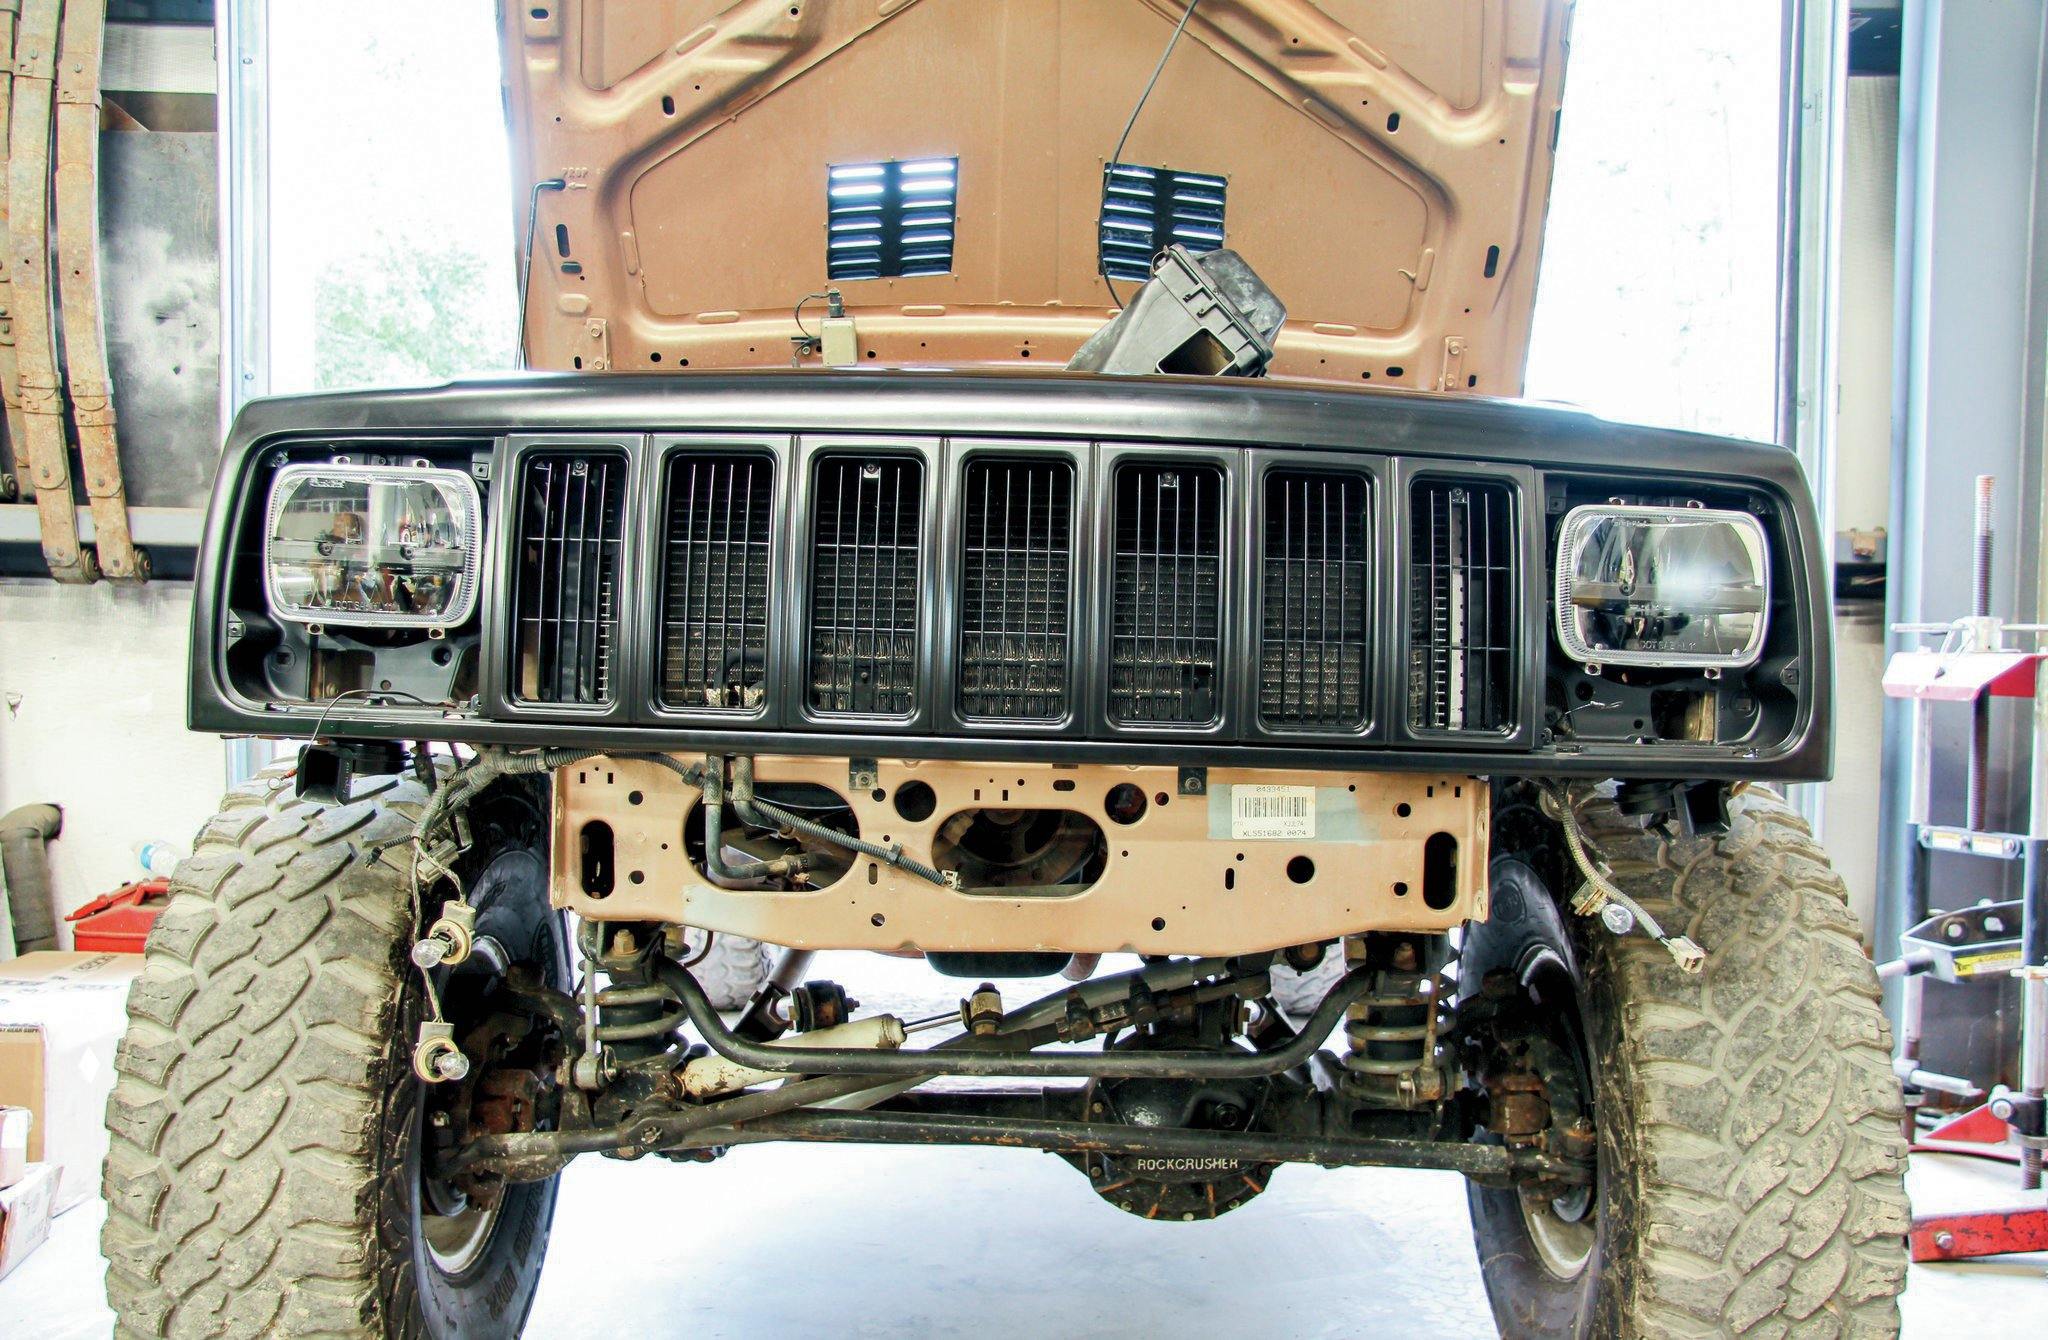 A convenient aspect about the XJ grill support is that the entire assembly can be taken off in one piece.